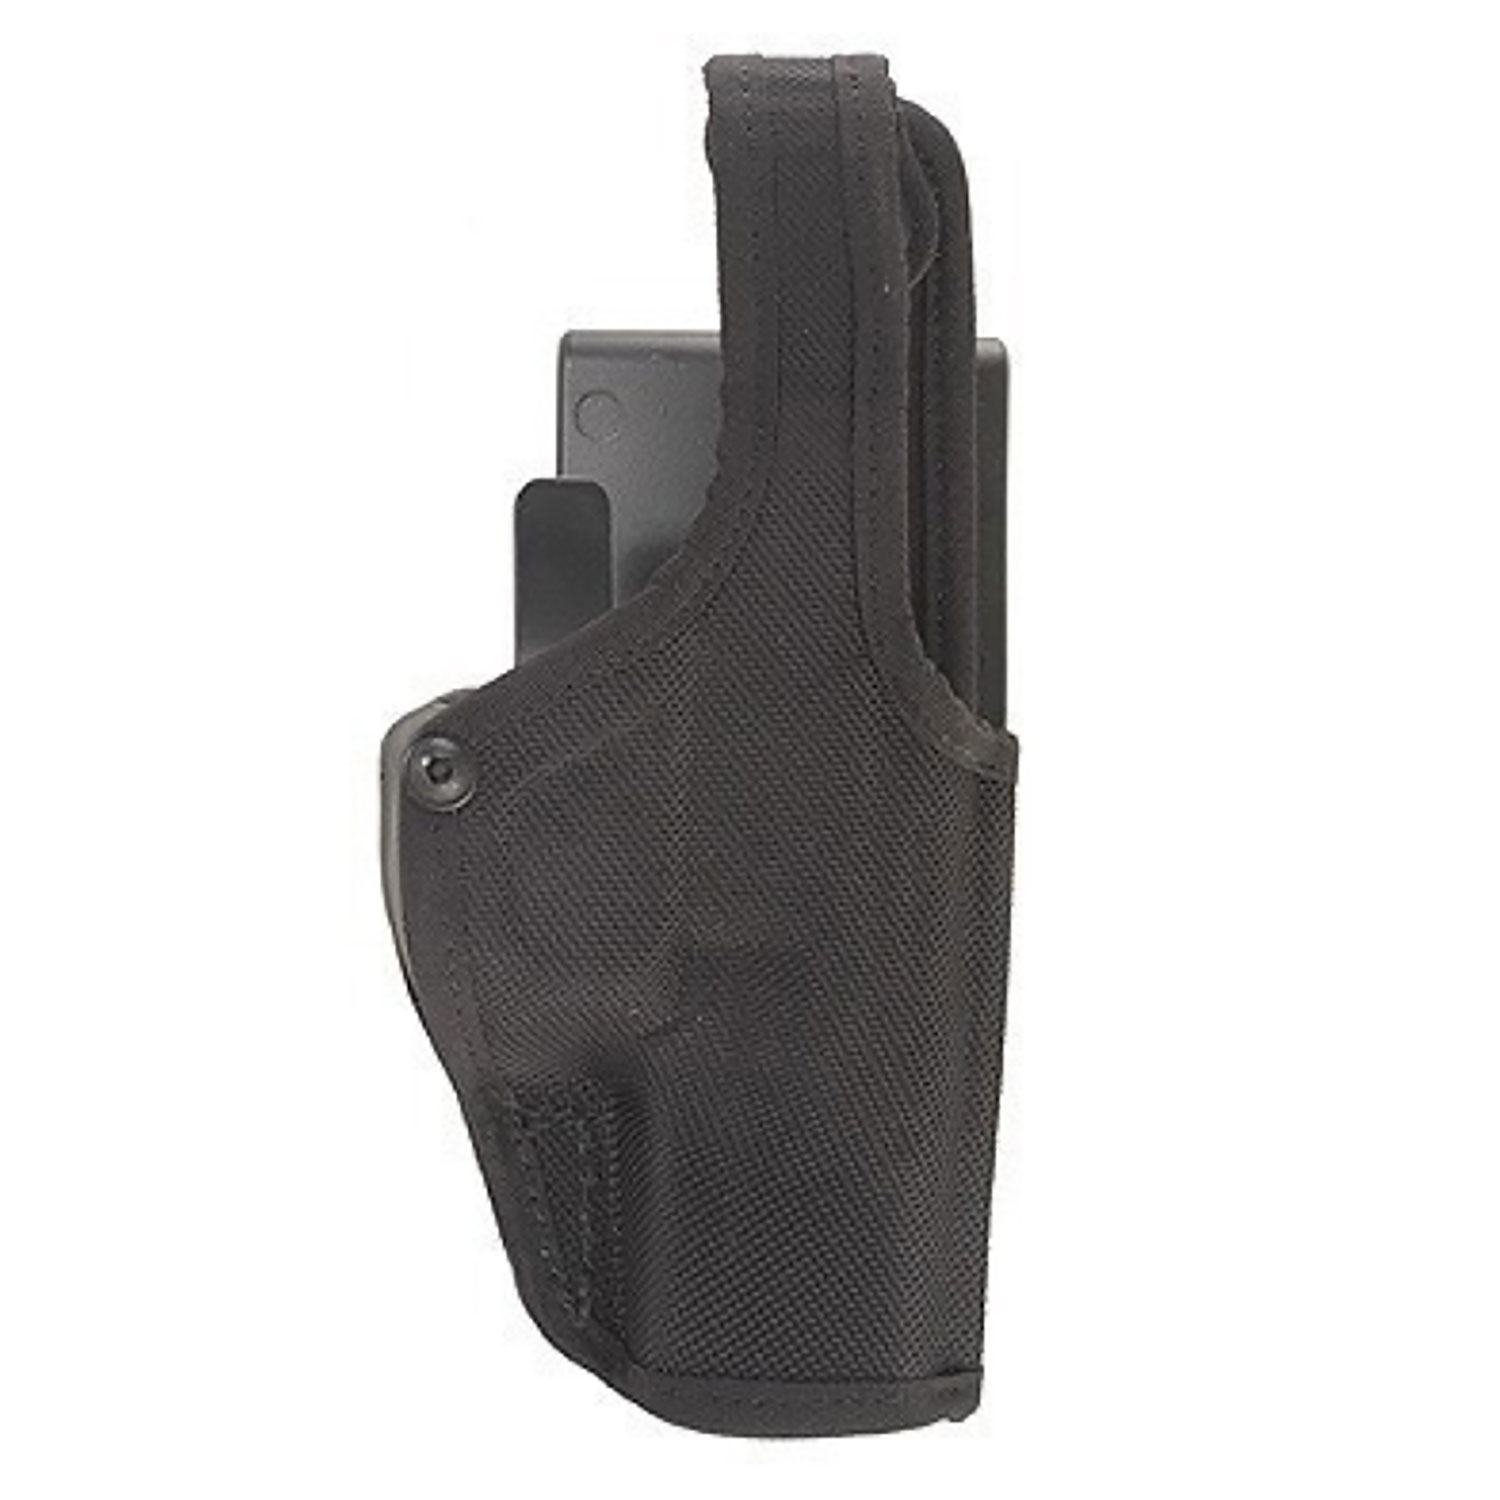 Bianchi 7130 AccuMold SL 3.2.1 Retention Duty Holster